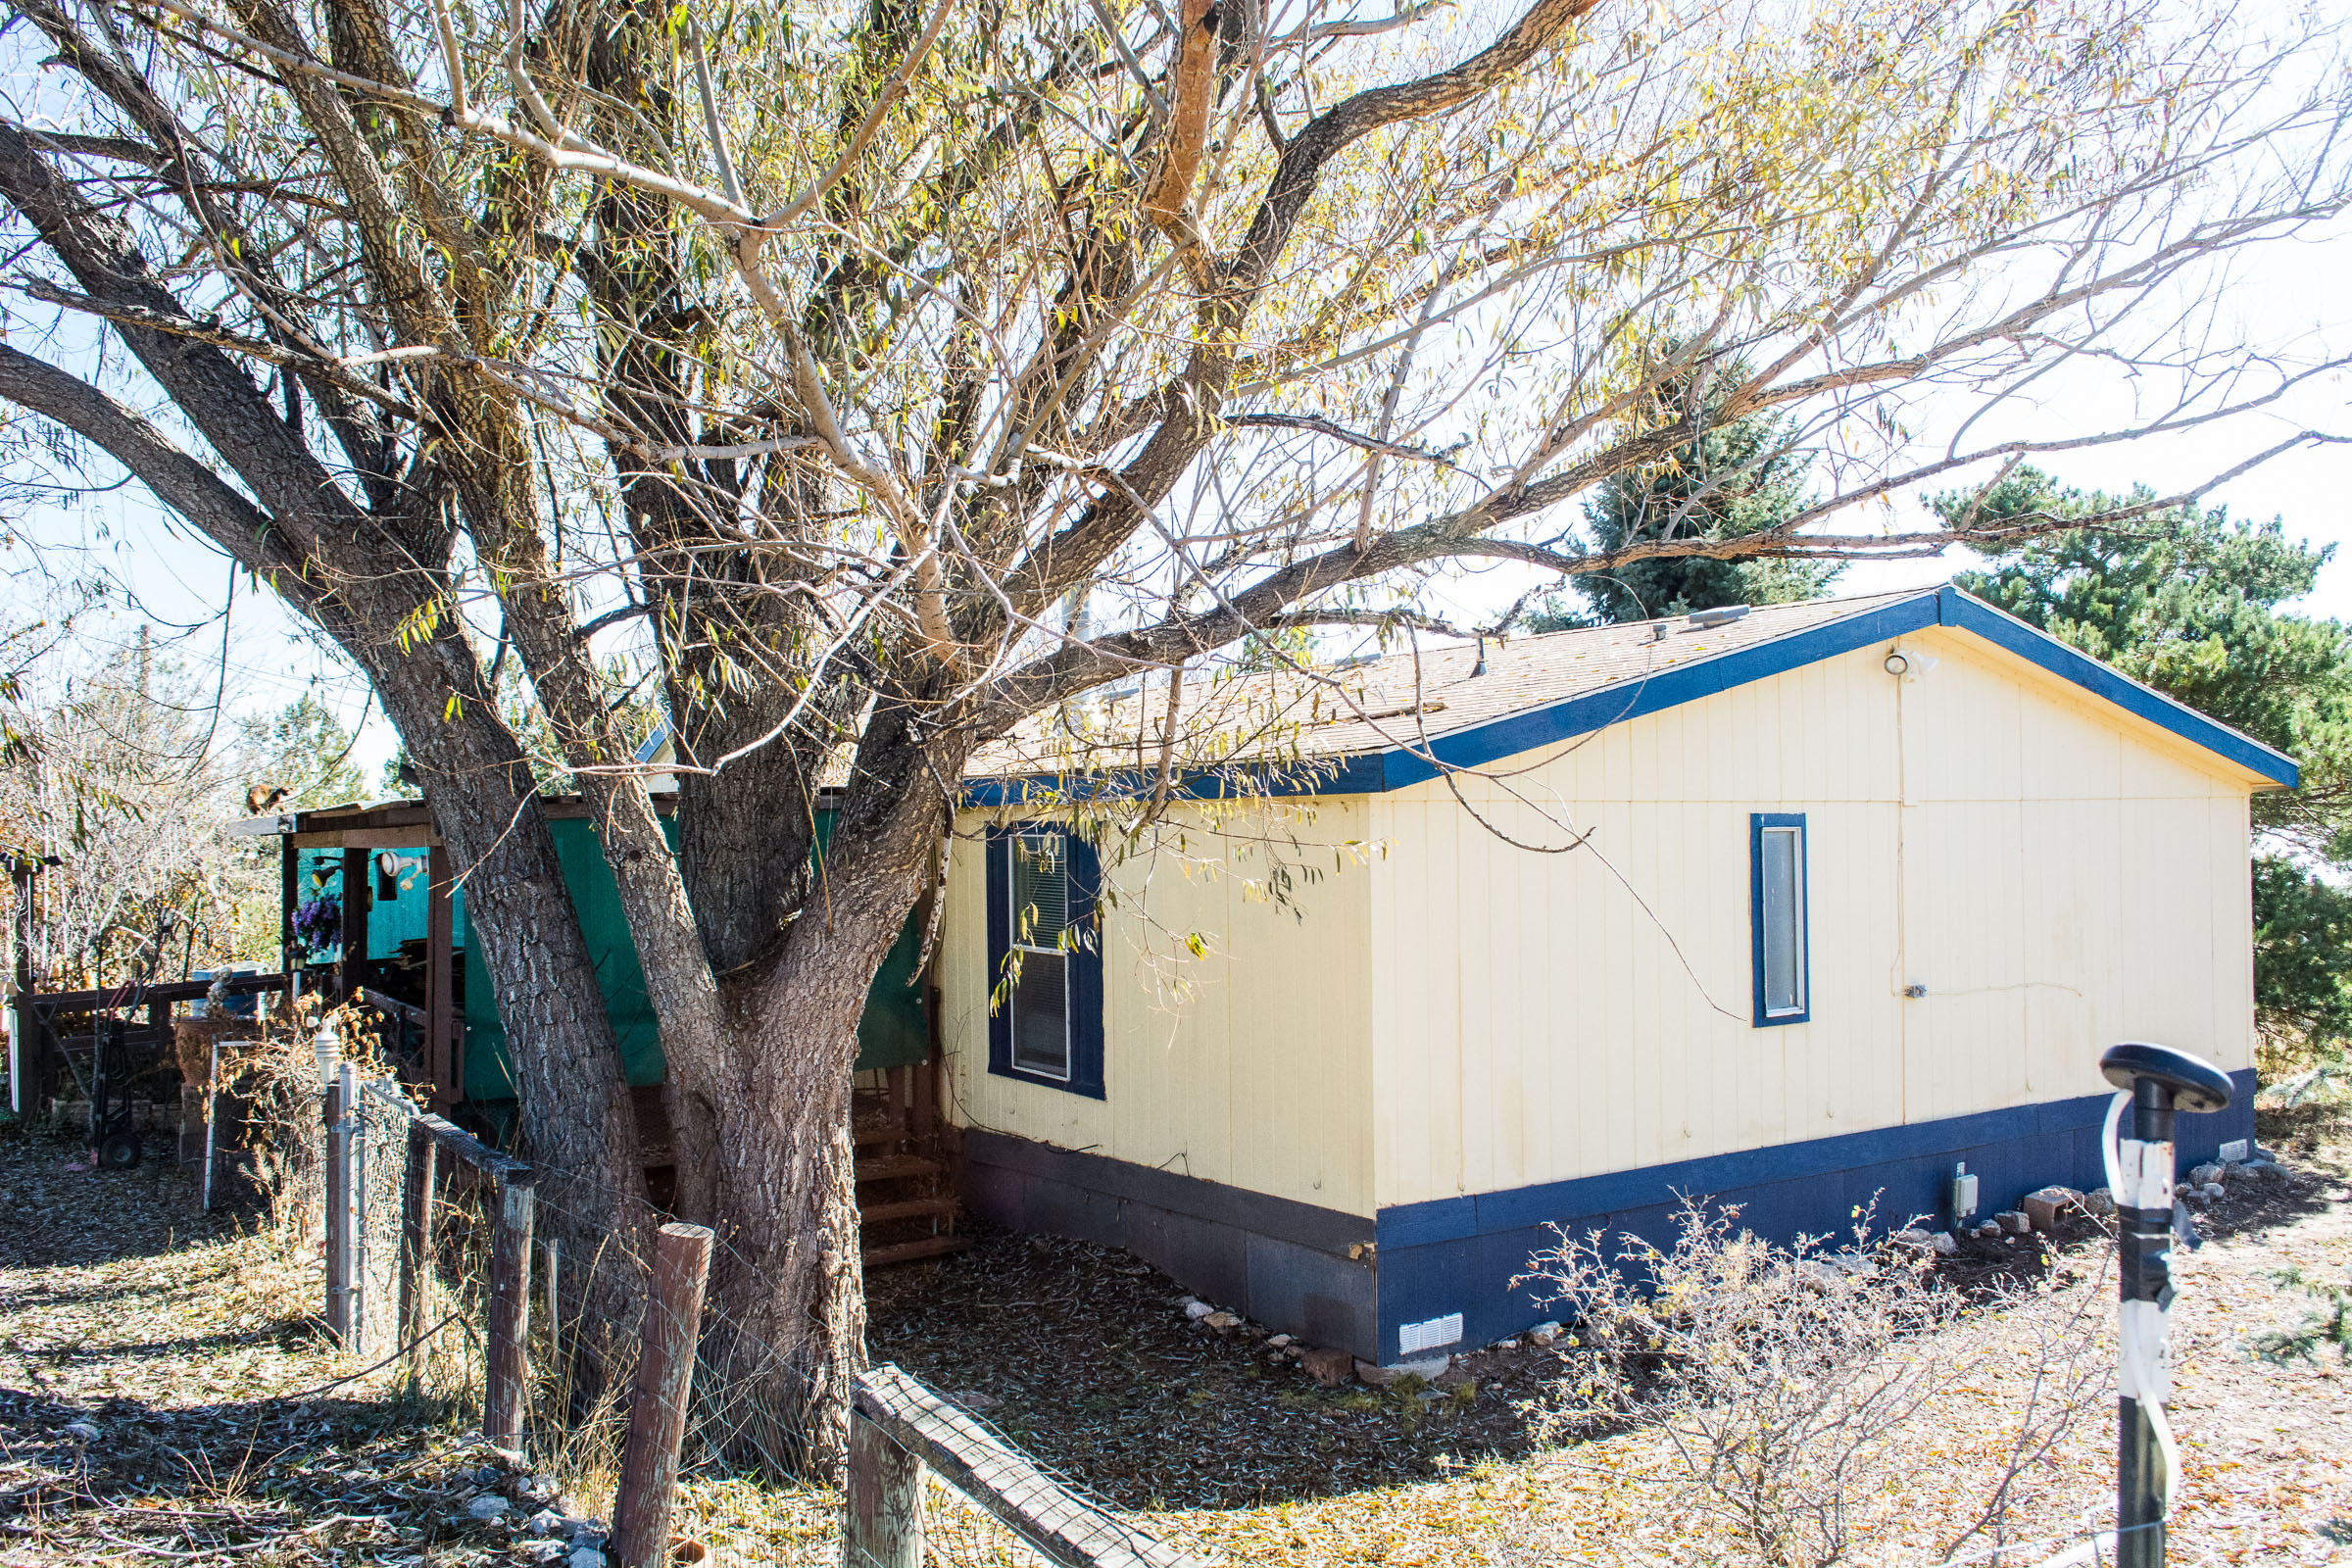 5 HUMMINGBIRD Lane, Edgewood, NM 87015 - Edgewood, NM real estate listing